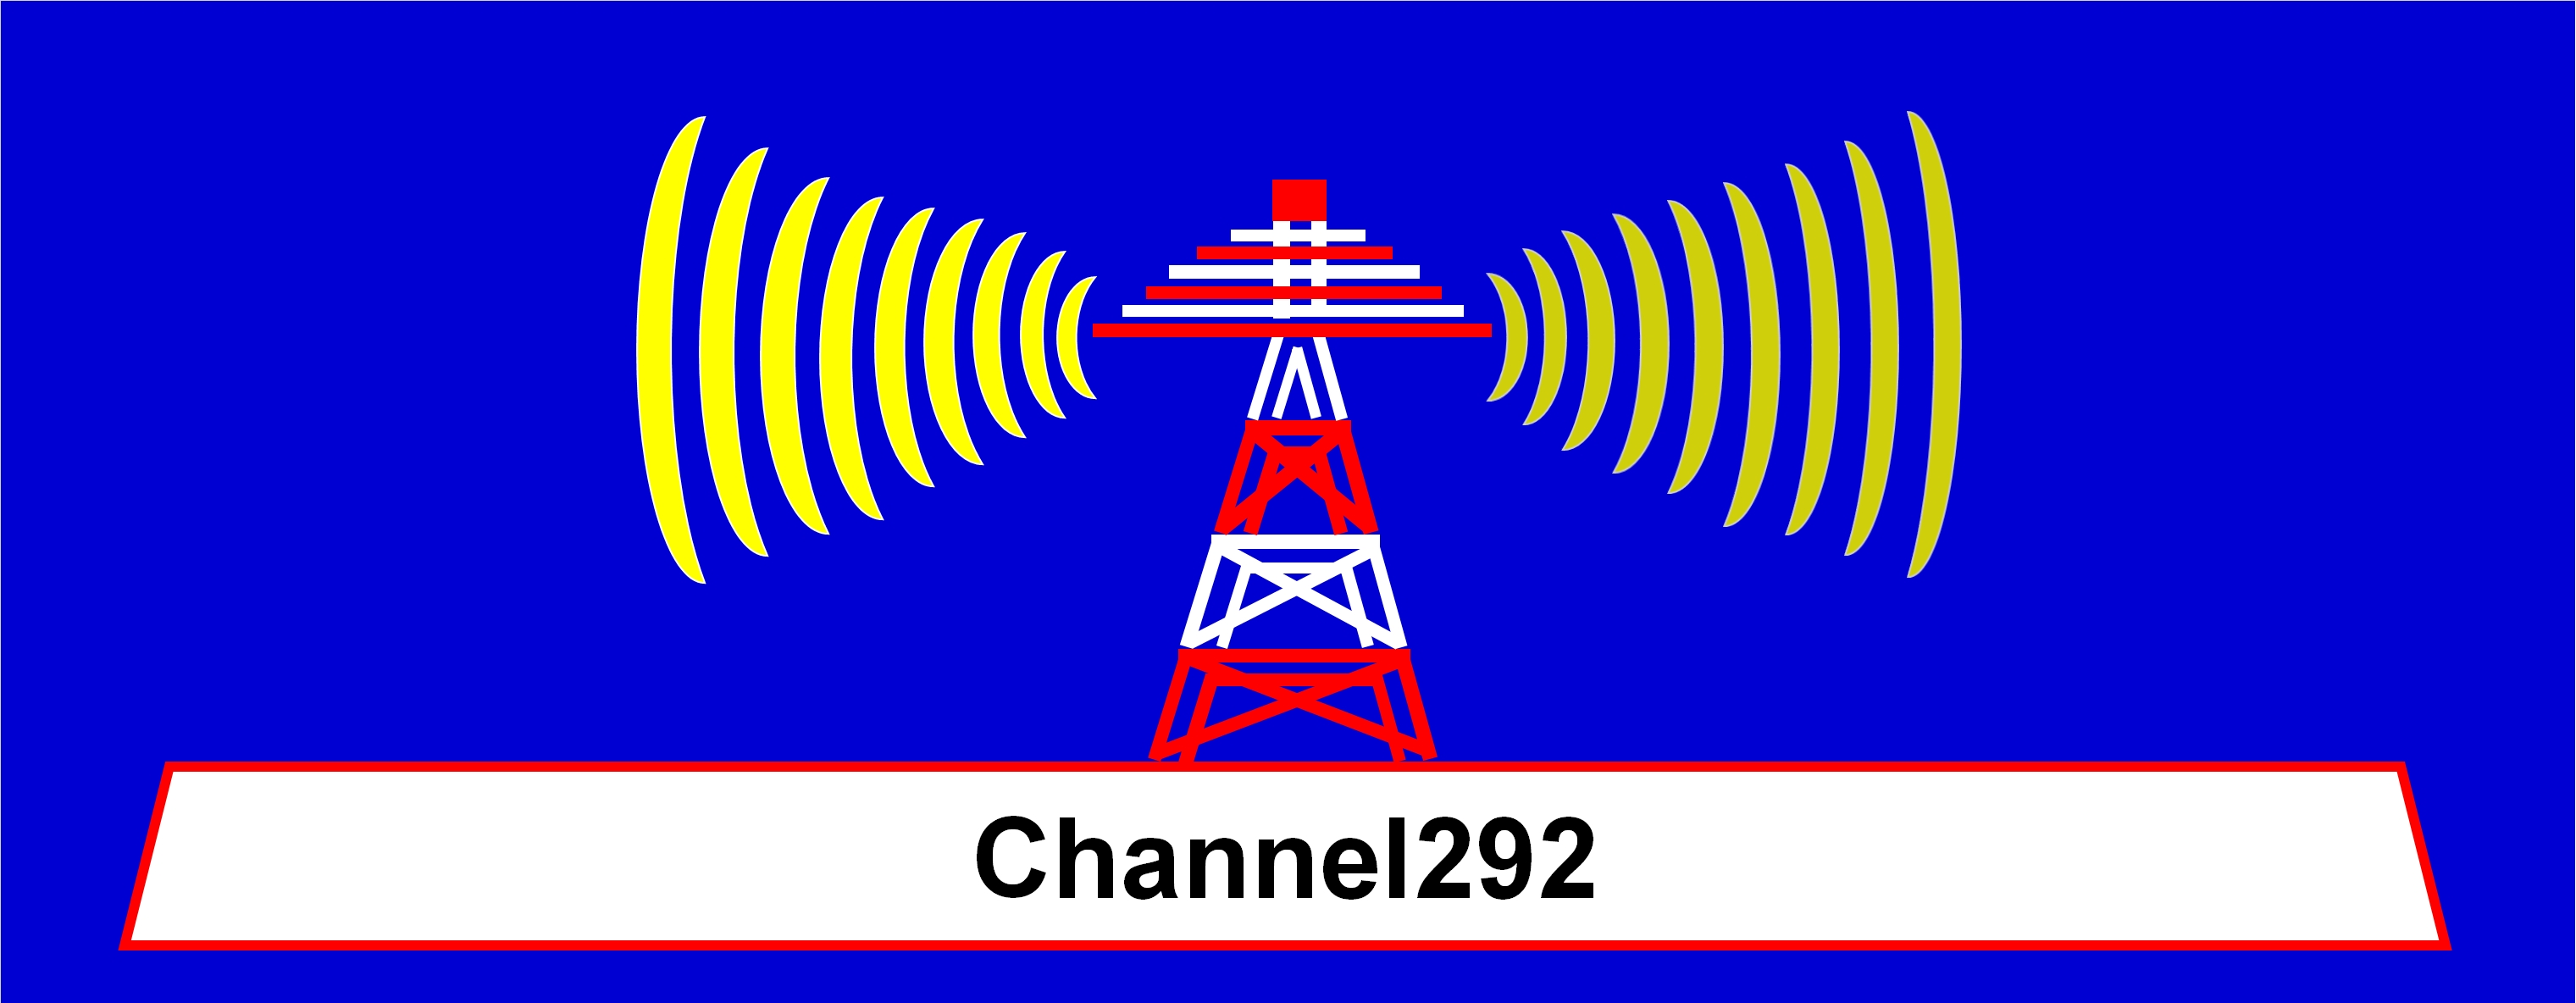 Channel292